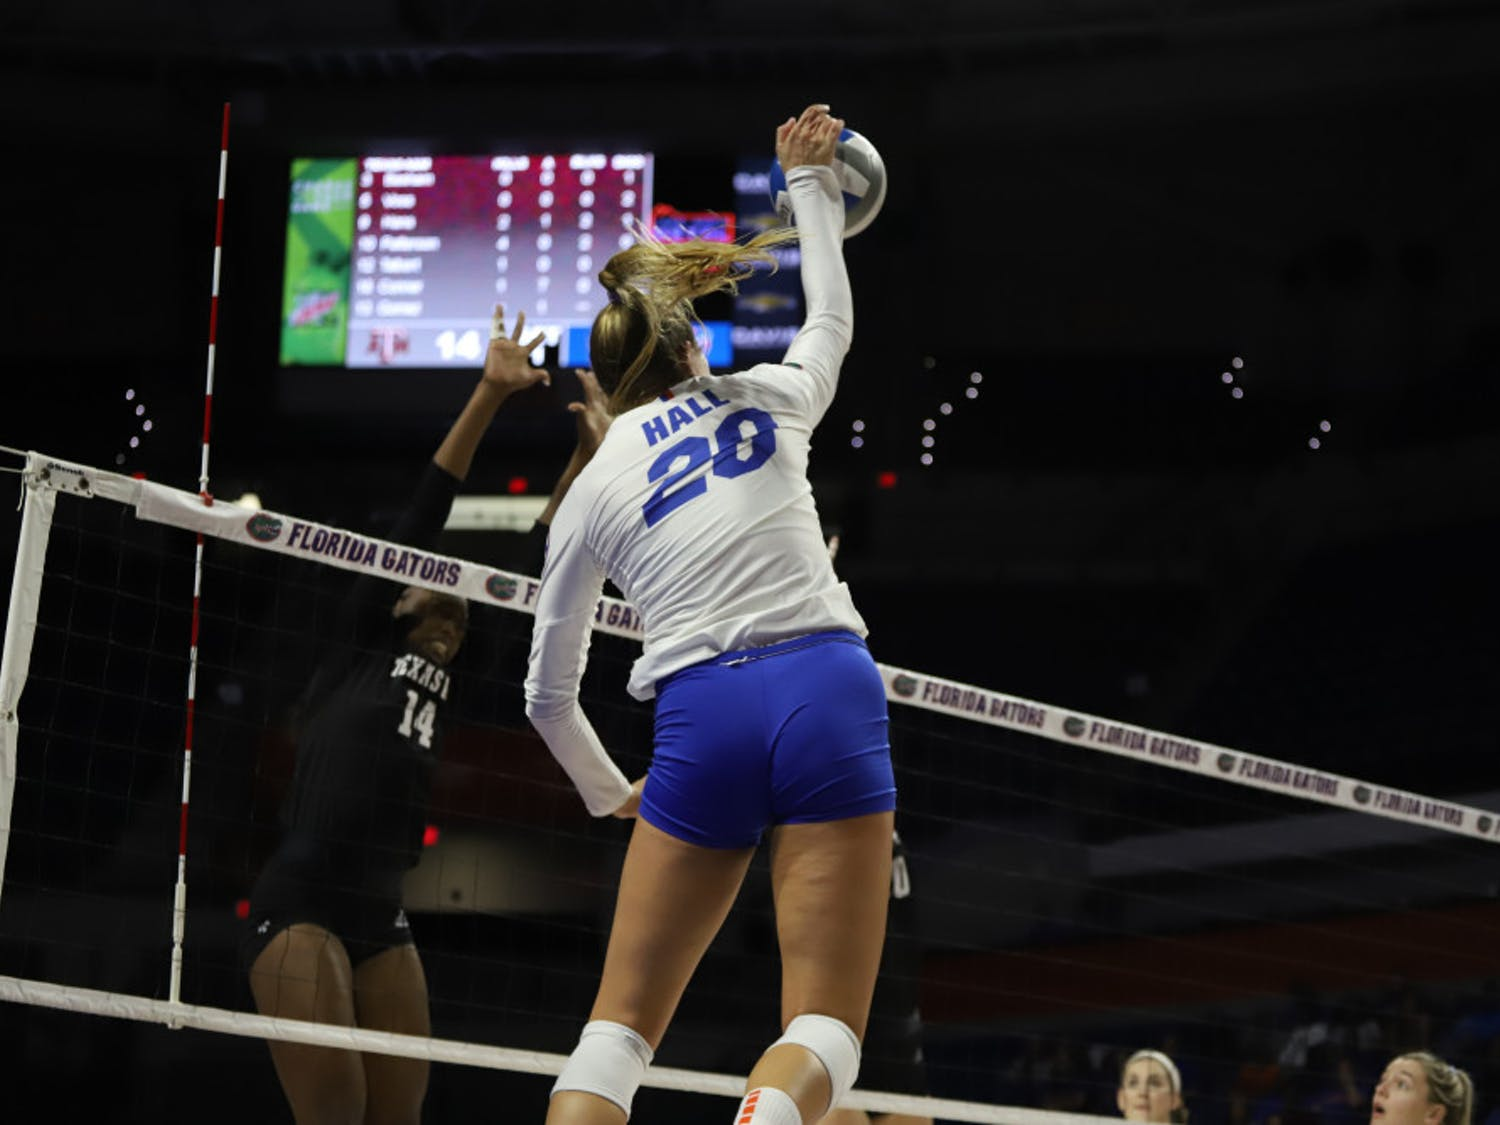 Outside hitters Thayer Hall (pictured) and T'ara Ceasar lead the Gatora in kills with 51 and 43, respectively.